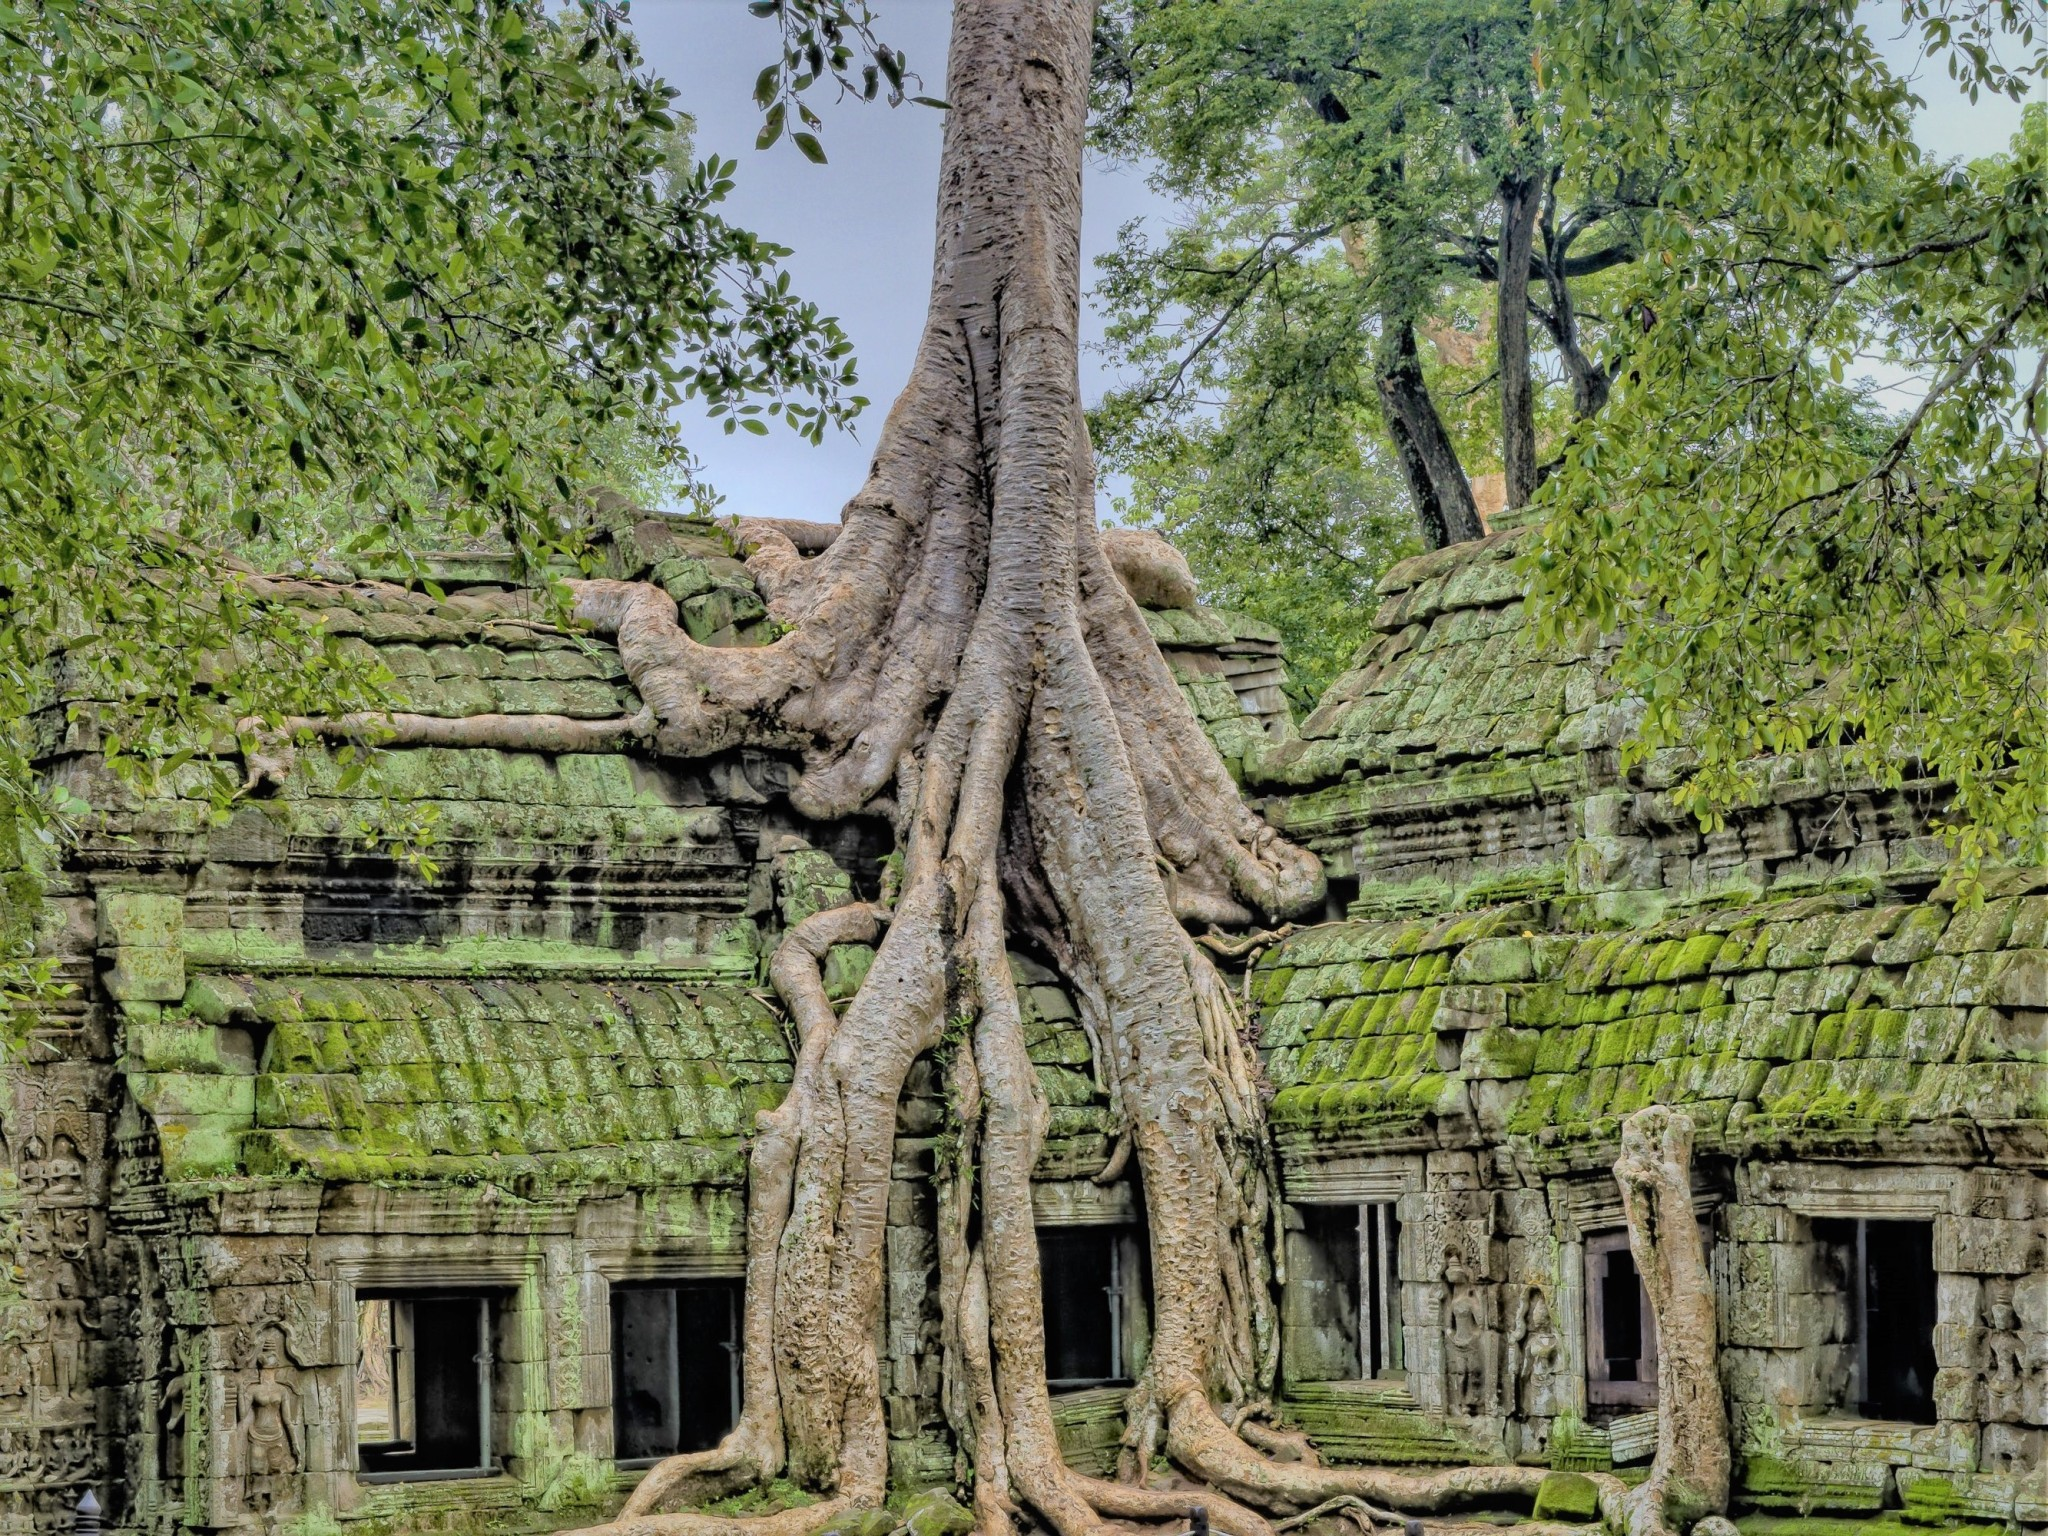 The roots of a large tree growing on and over the roof of an ancient moss-covered ruined temple in Angkor, Cambodia, representing the partnership between nature and humanity.